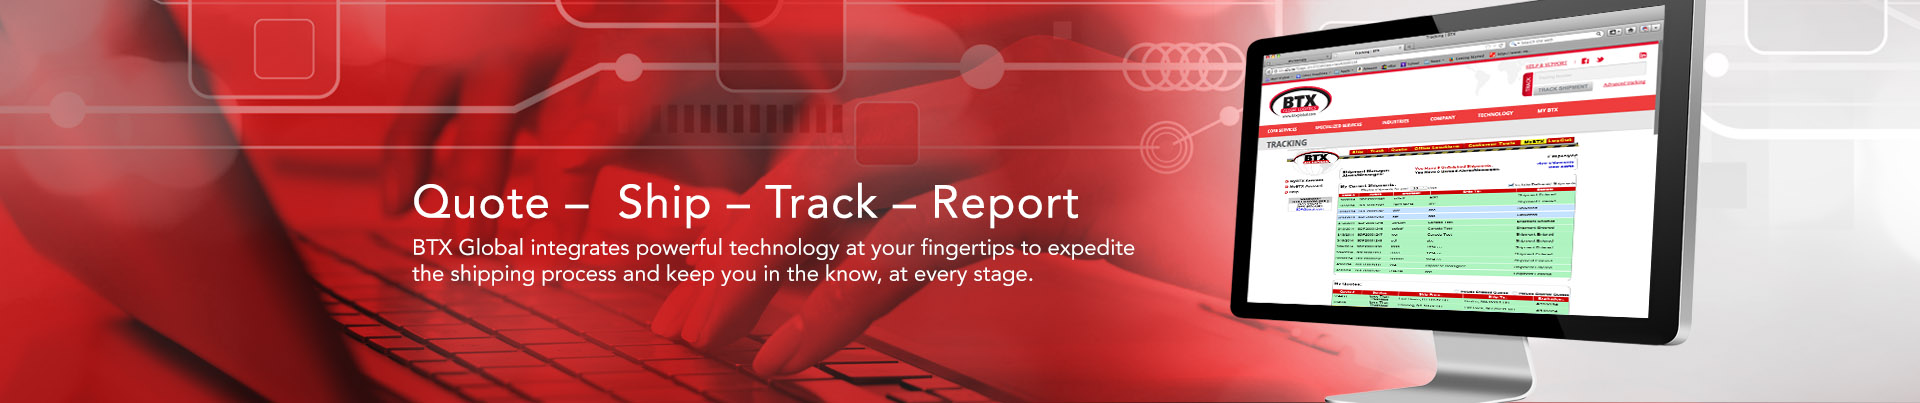 Technology Integration for Shipping